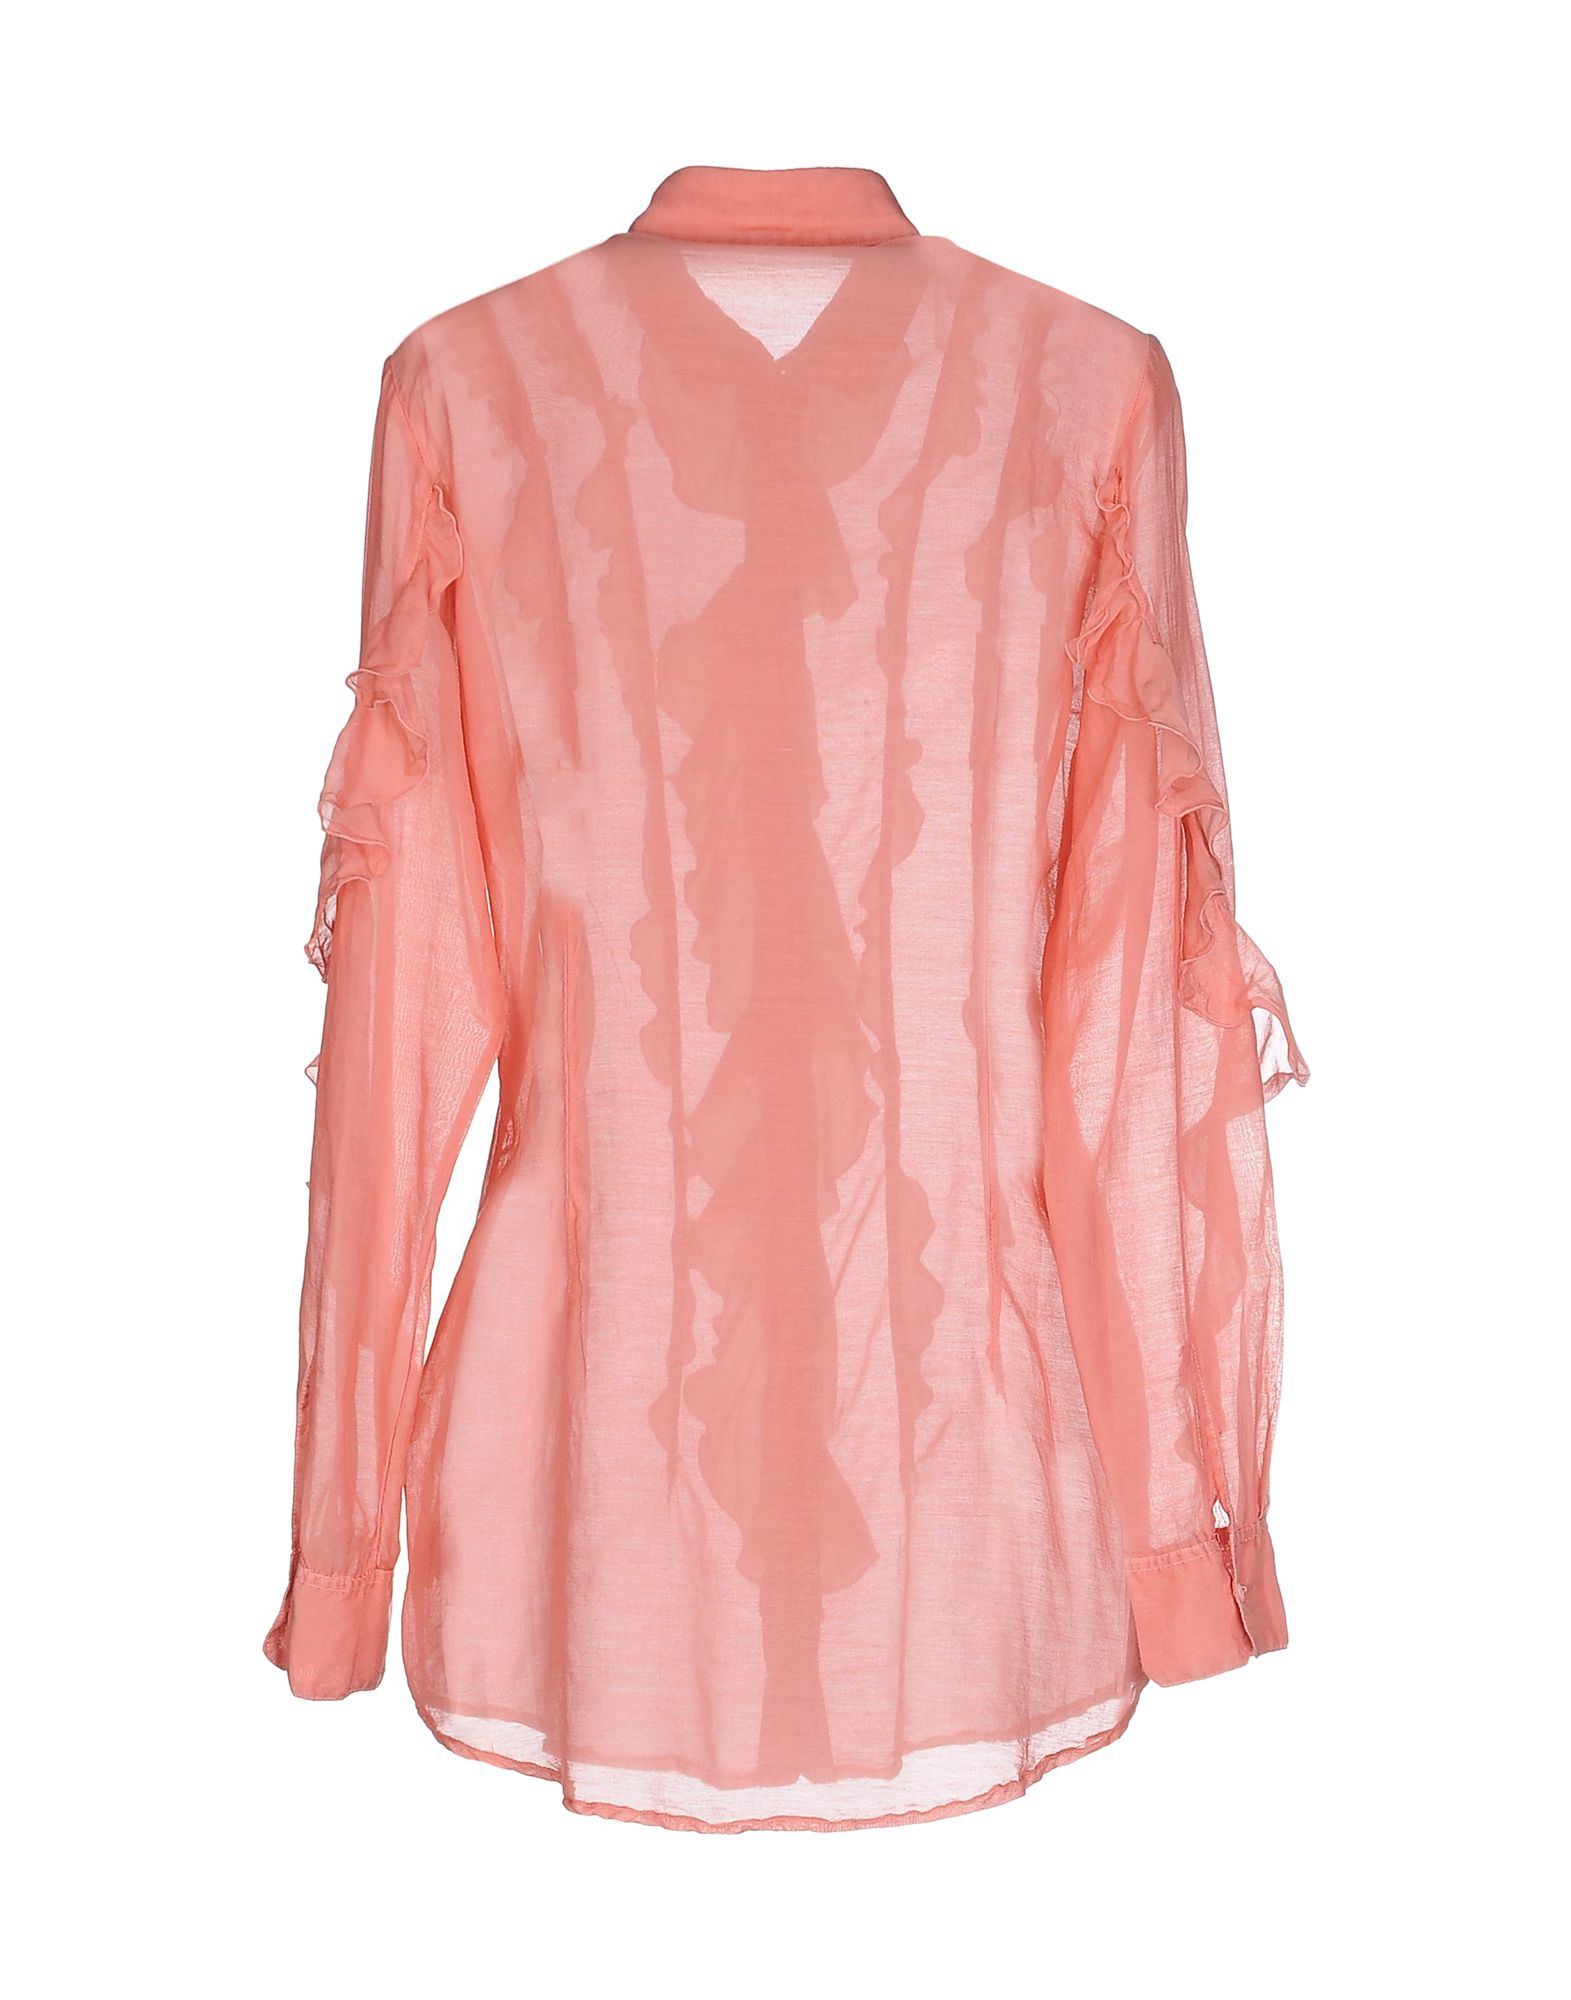 European Culture Shirt In Pink Lyst